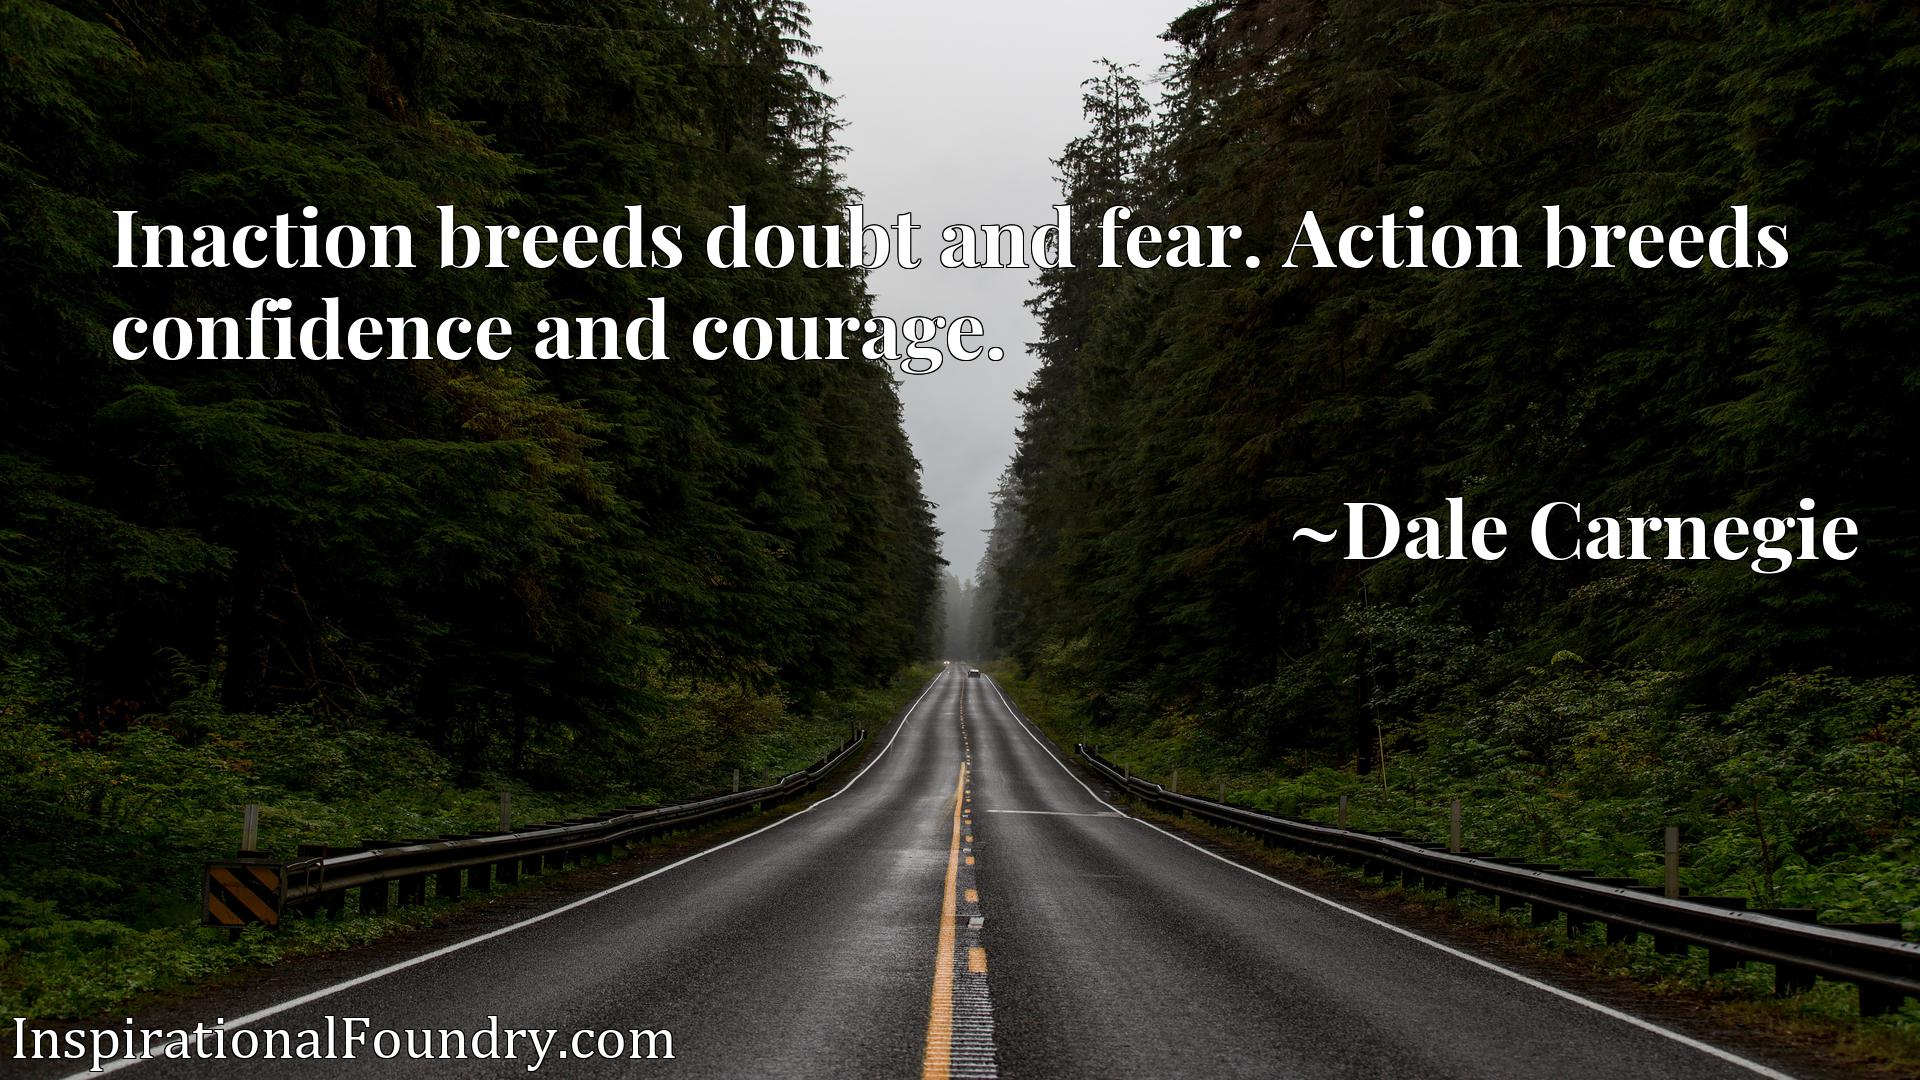 Inaction breeds doubt and fear. Action breeds confidence and courage.